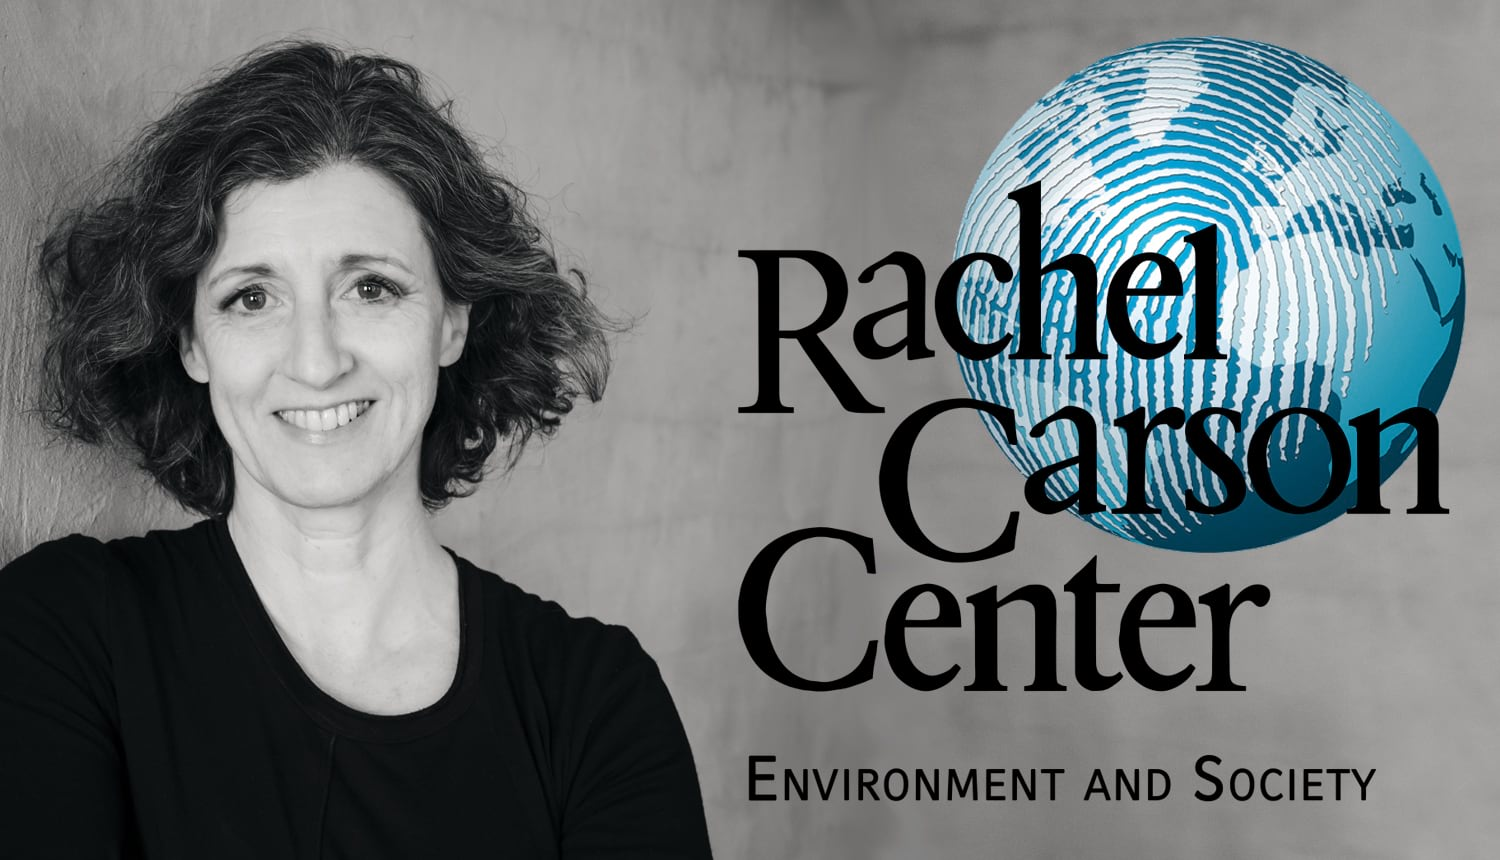 rachel_carson_center_regine_keller.jpg